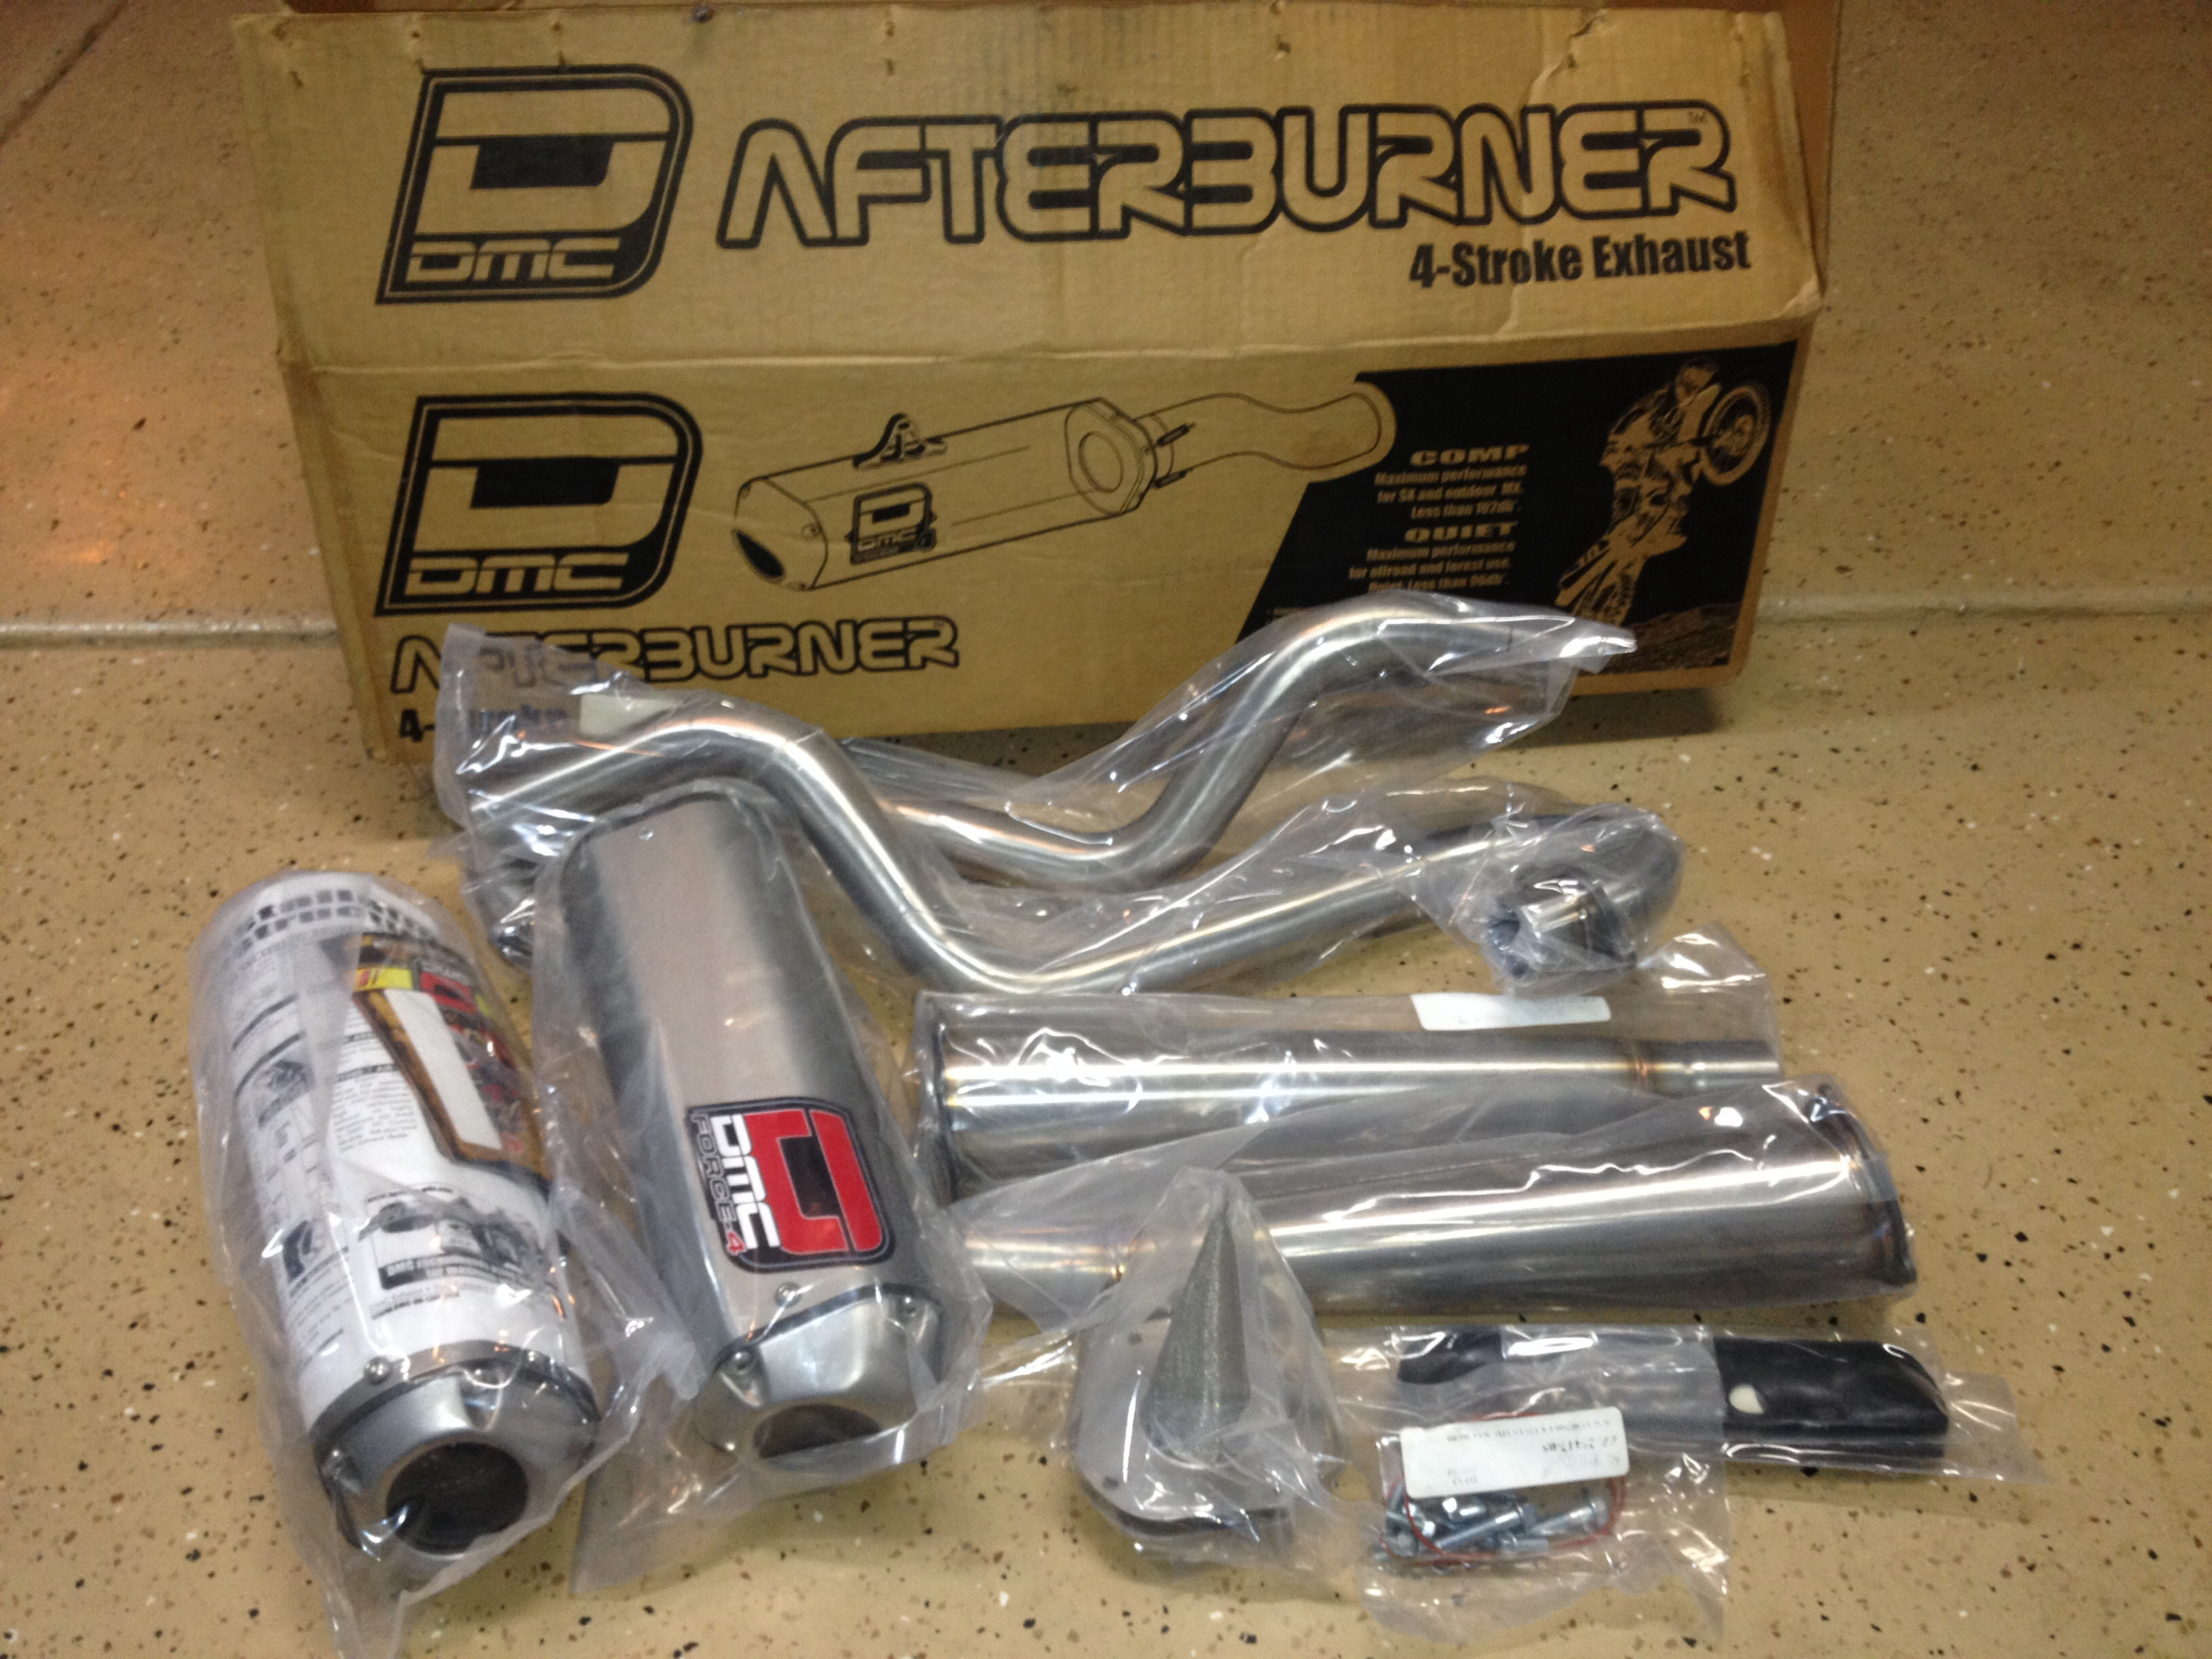 yamaha raptor 700r performance kit 2007 2013 image 6 jpg